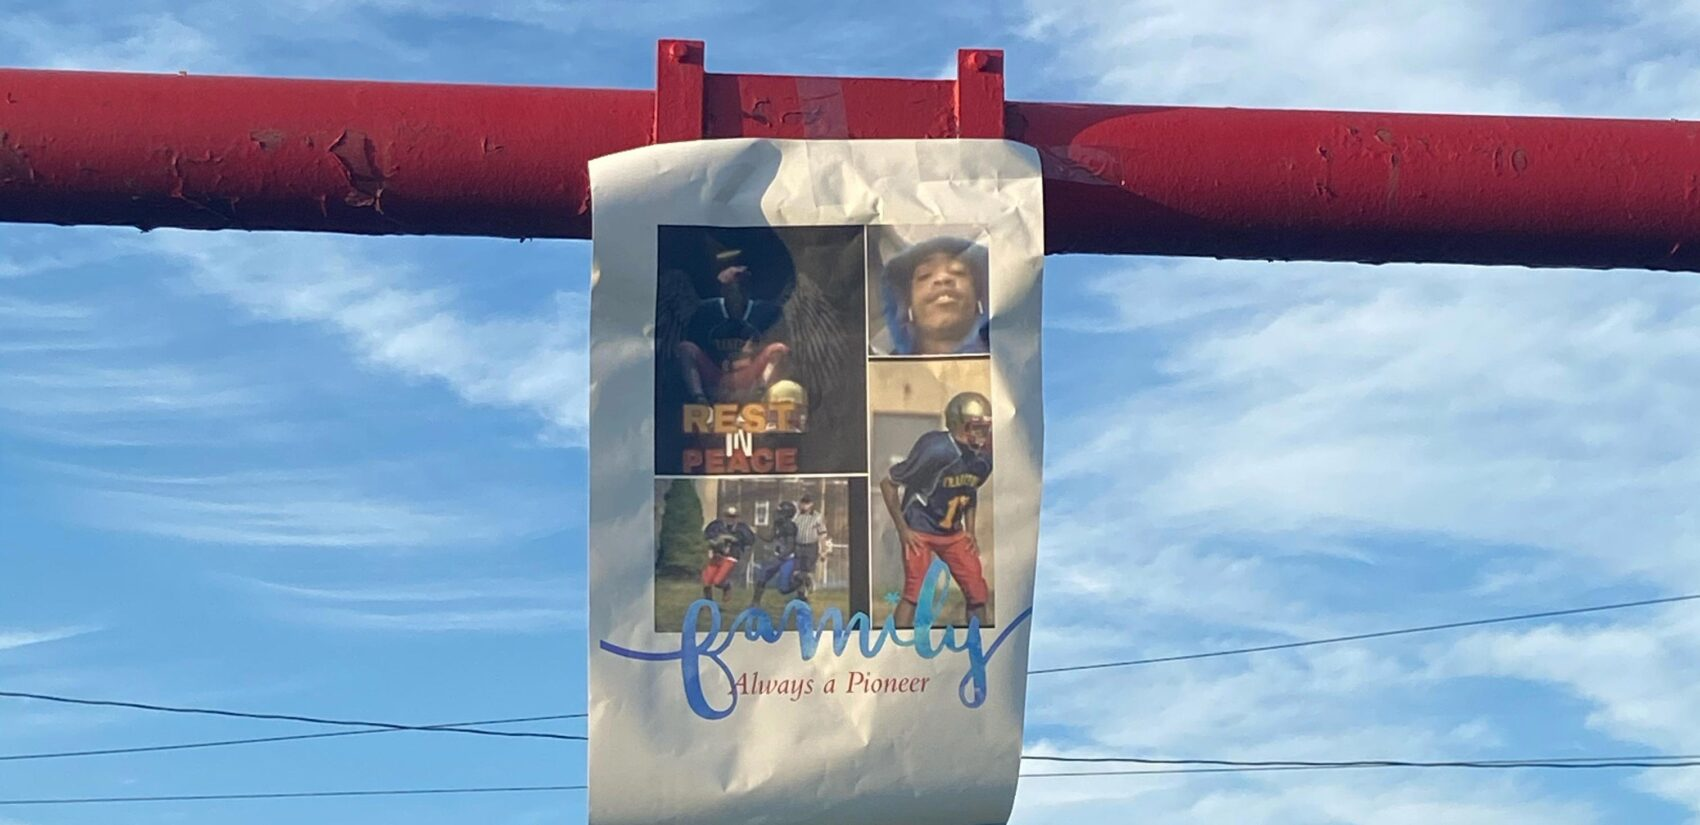 A flyer hangs on the goal post of the Frankford High School football field during Angelo Walker's memorial. (Courtesy of Isabella DiBileo)